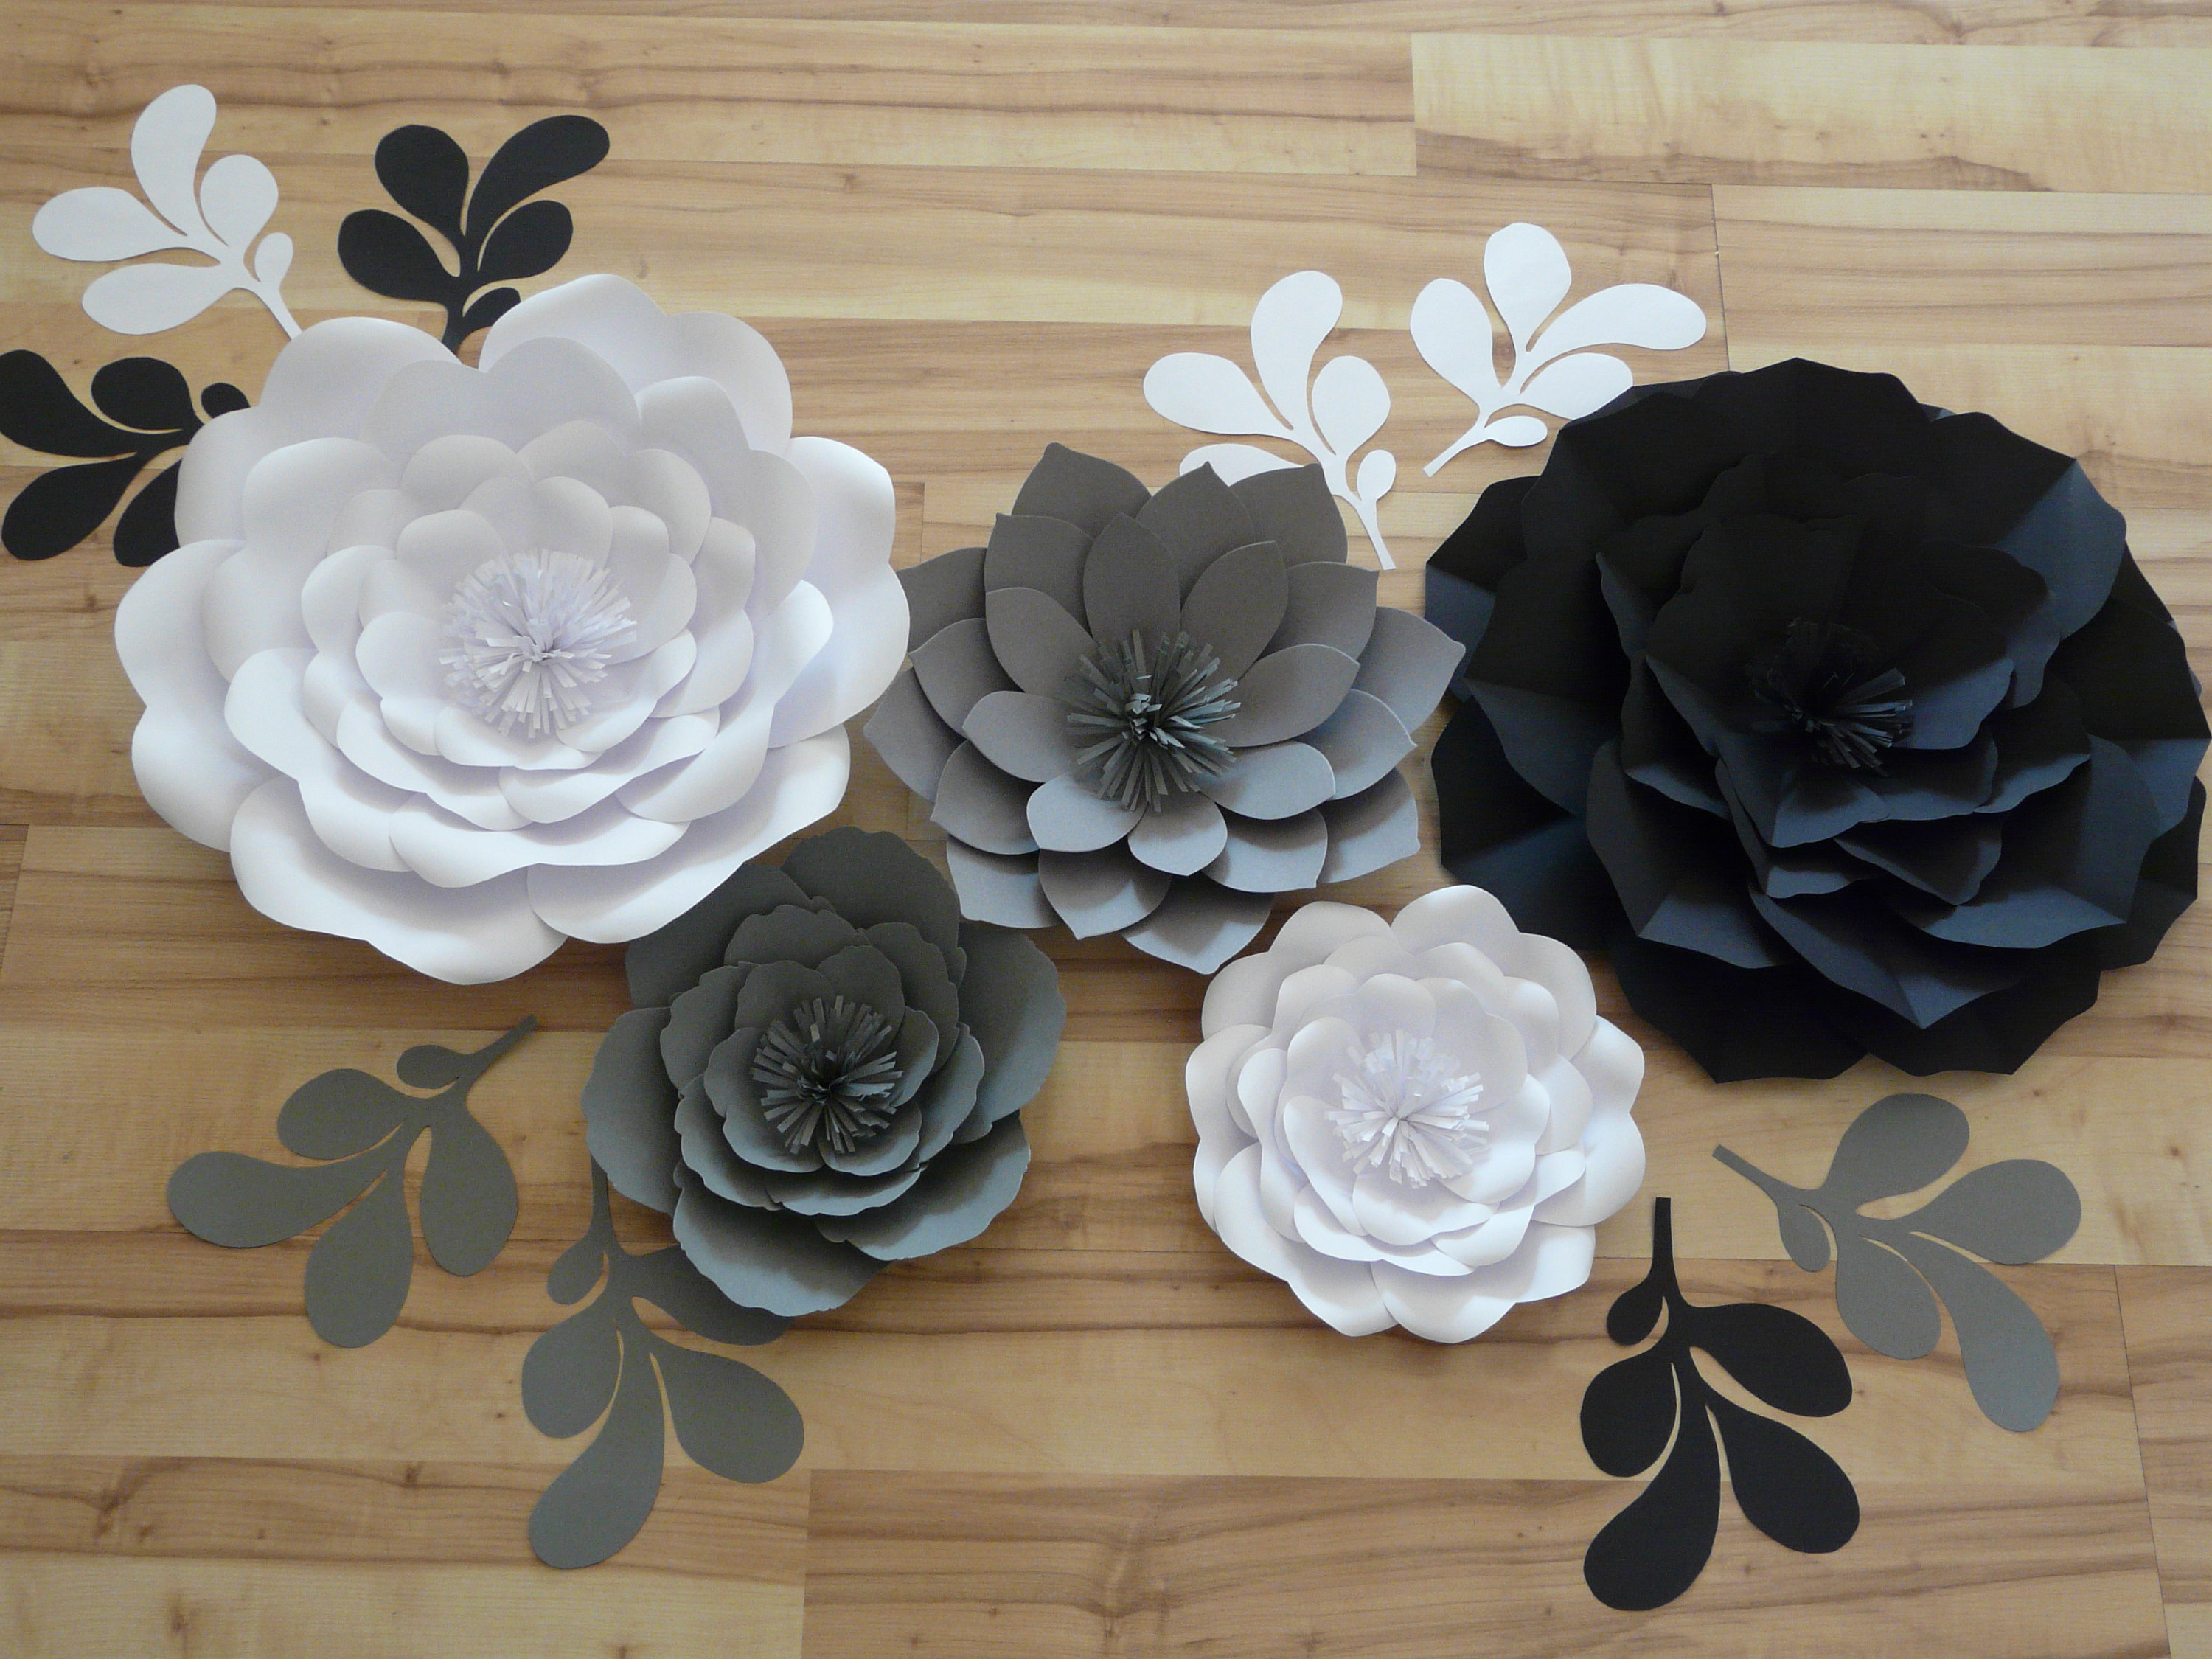 Etsy For Most Up To Date 3 Piece Ceramic Flowers Wall Decor Sets (Gallery 7 of 20)